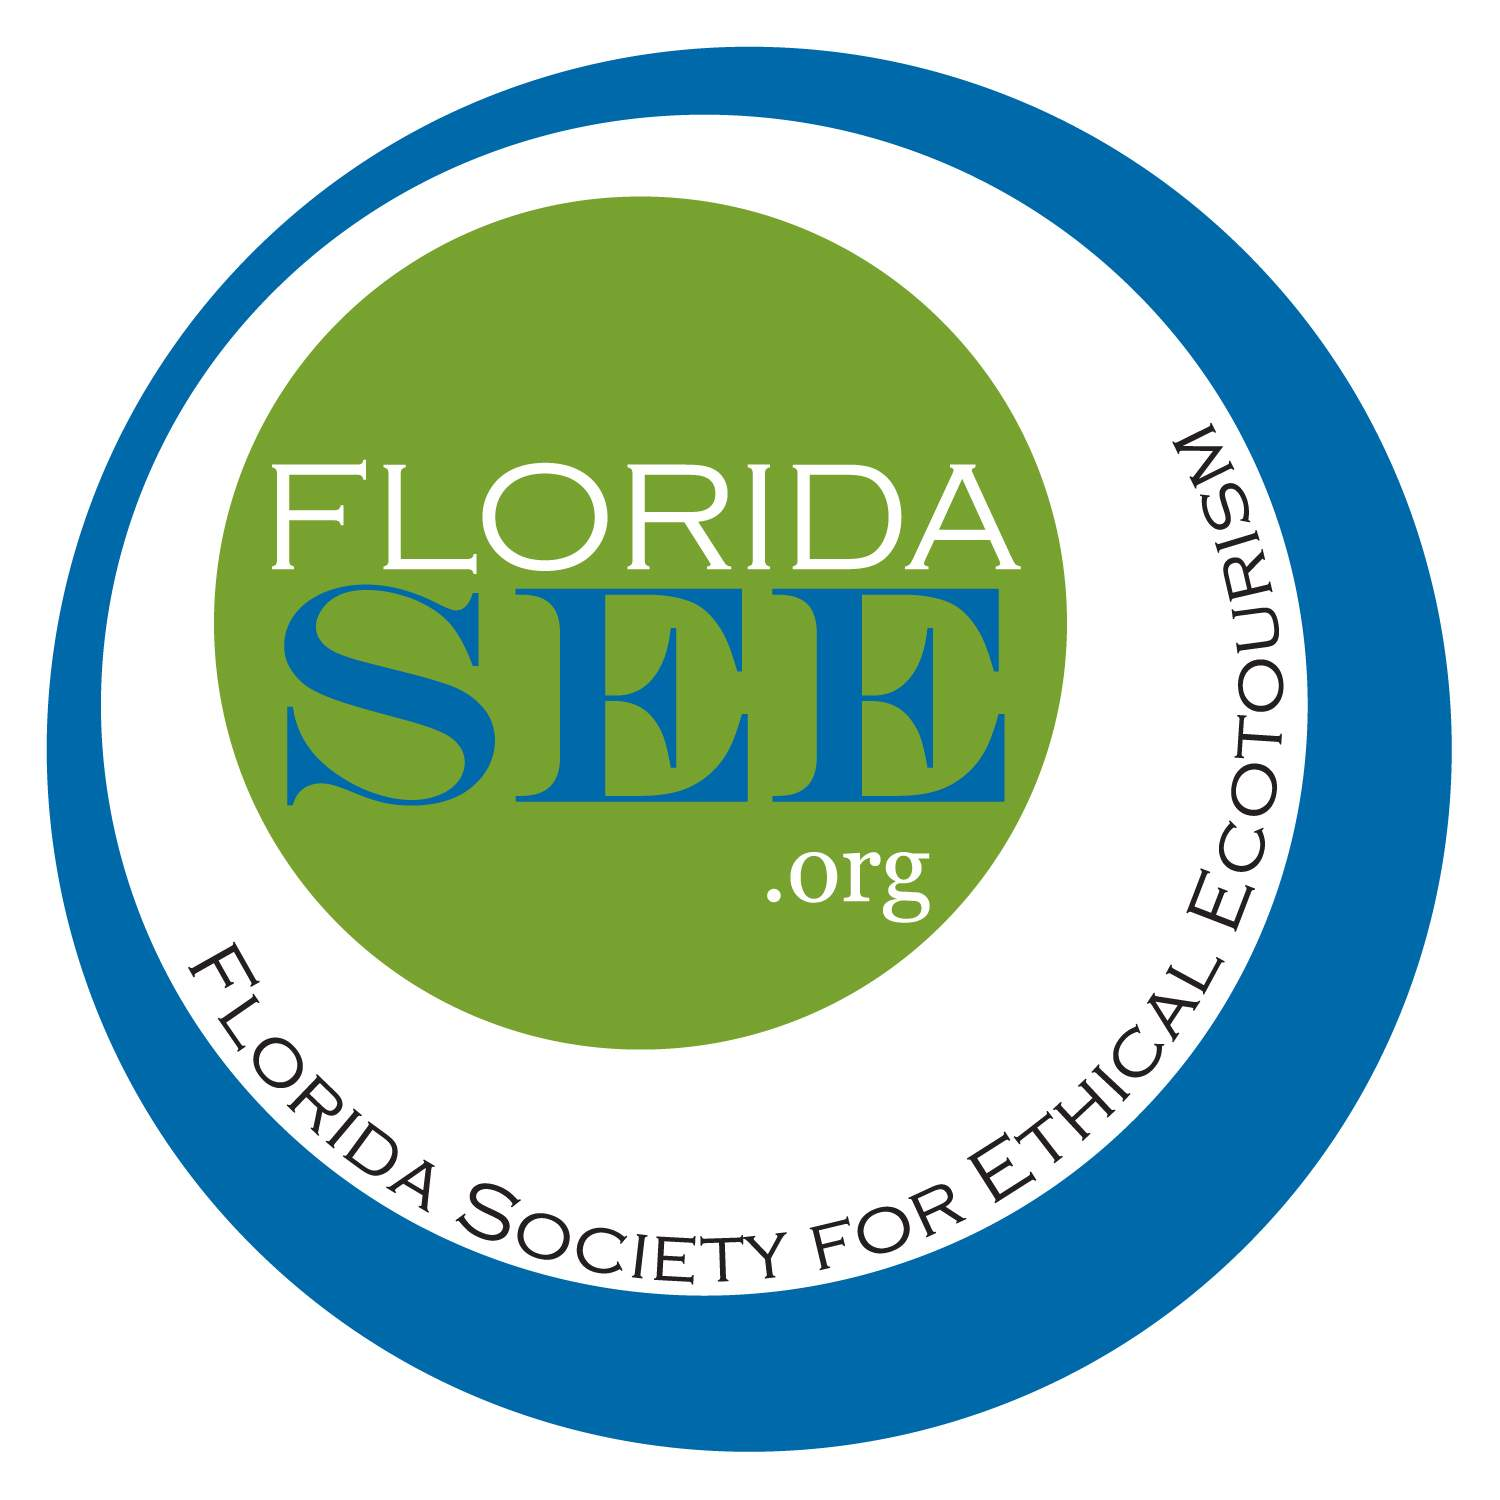 Florida SEE Certified Silver accreditation logo